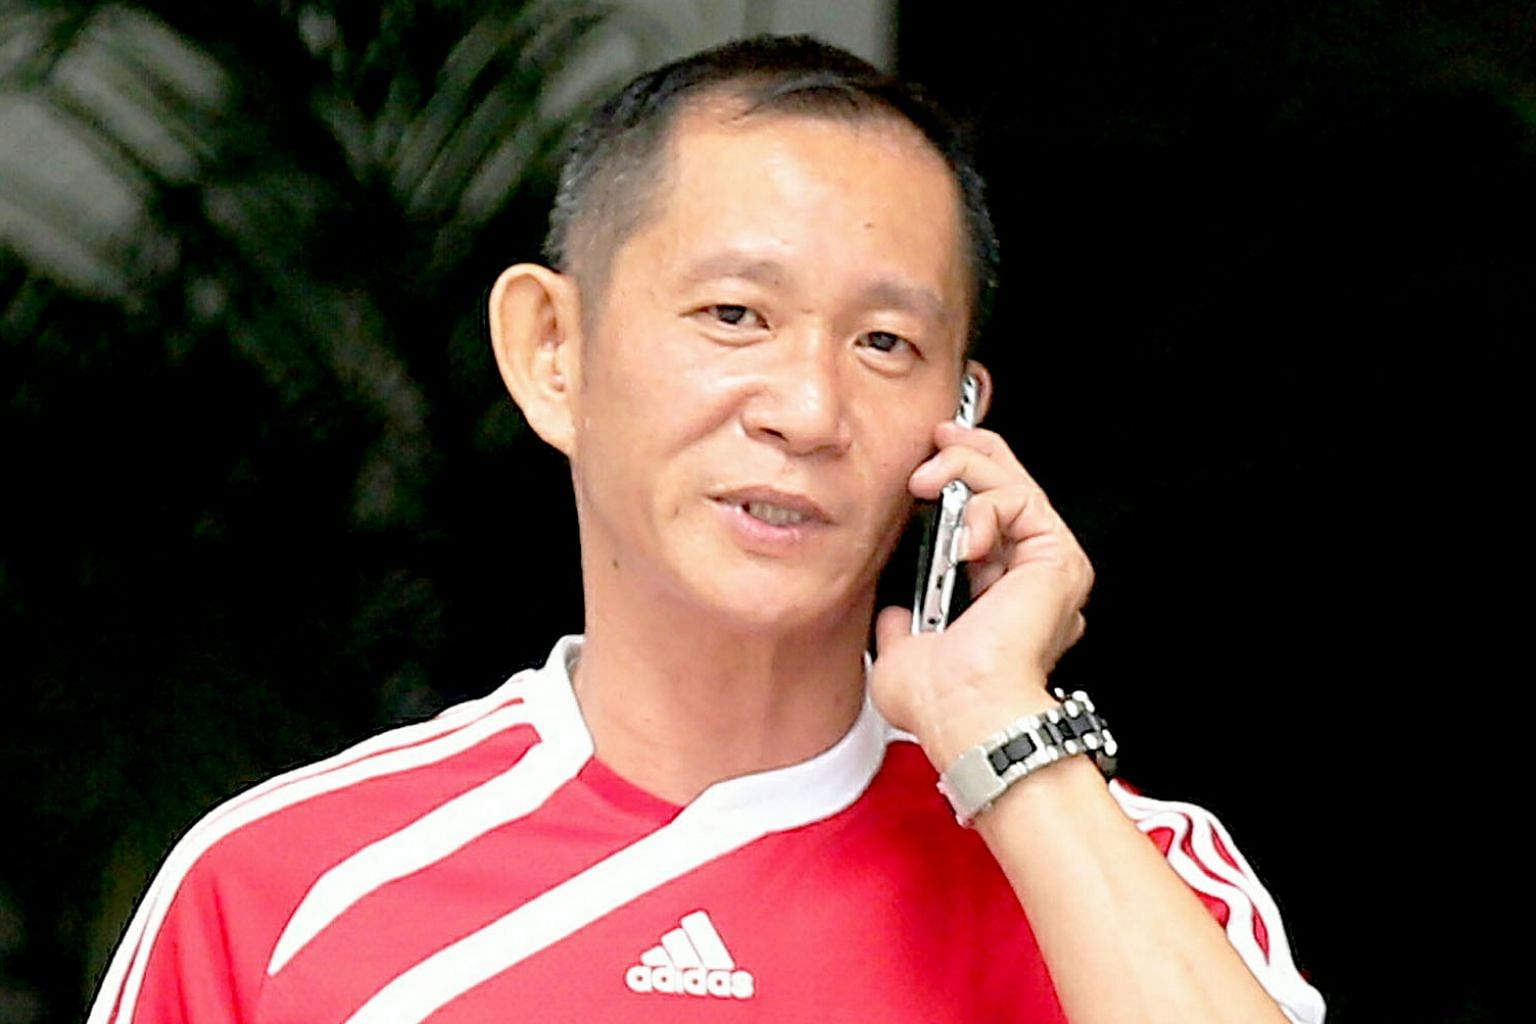 Yeo Poh Kwee ran down almost 20 floors of a staircase with his dog tied to him, causing it to be slammed against the walls and steps.